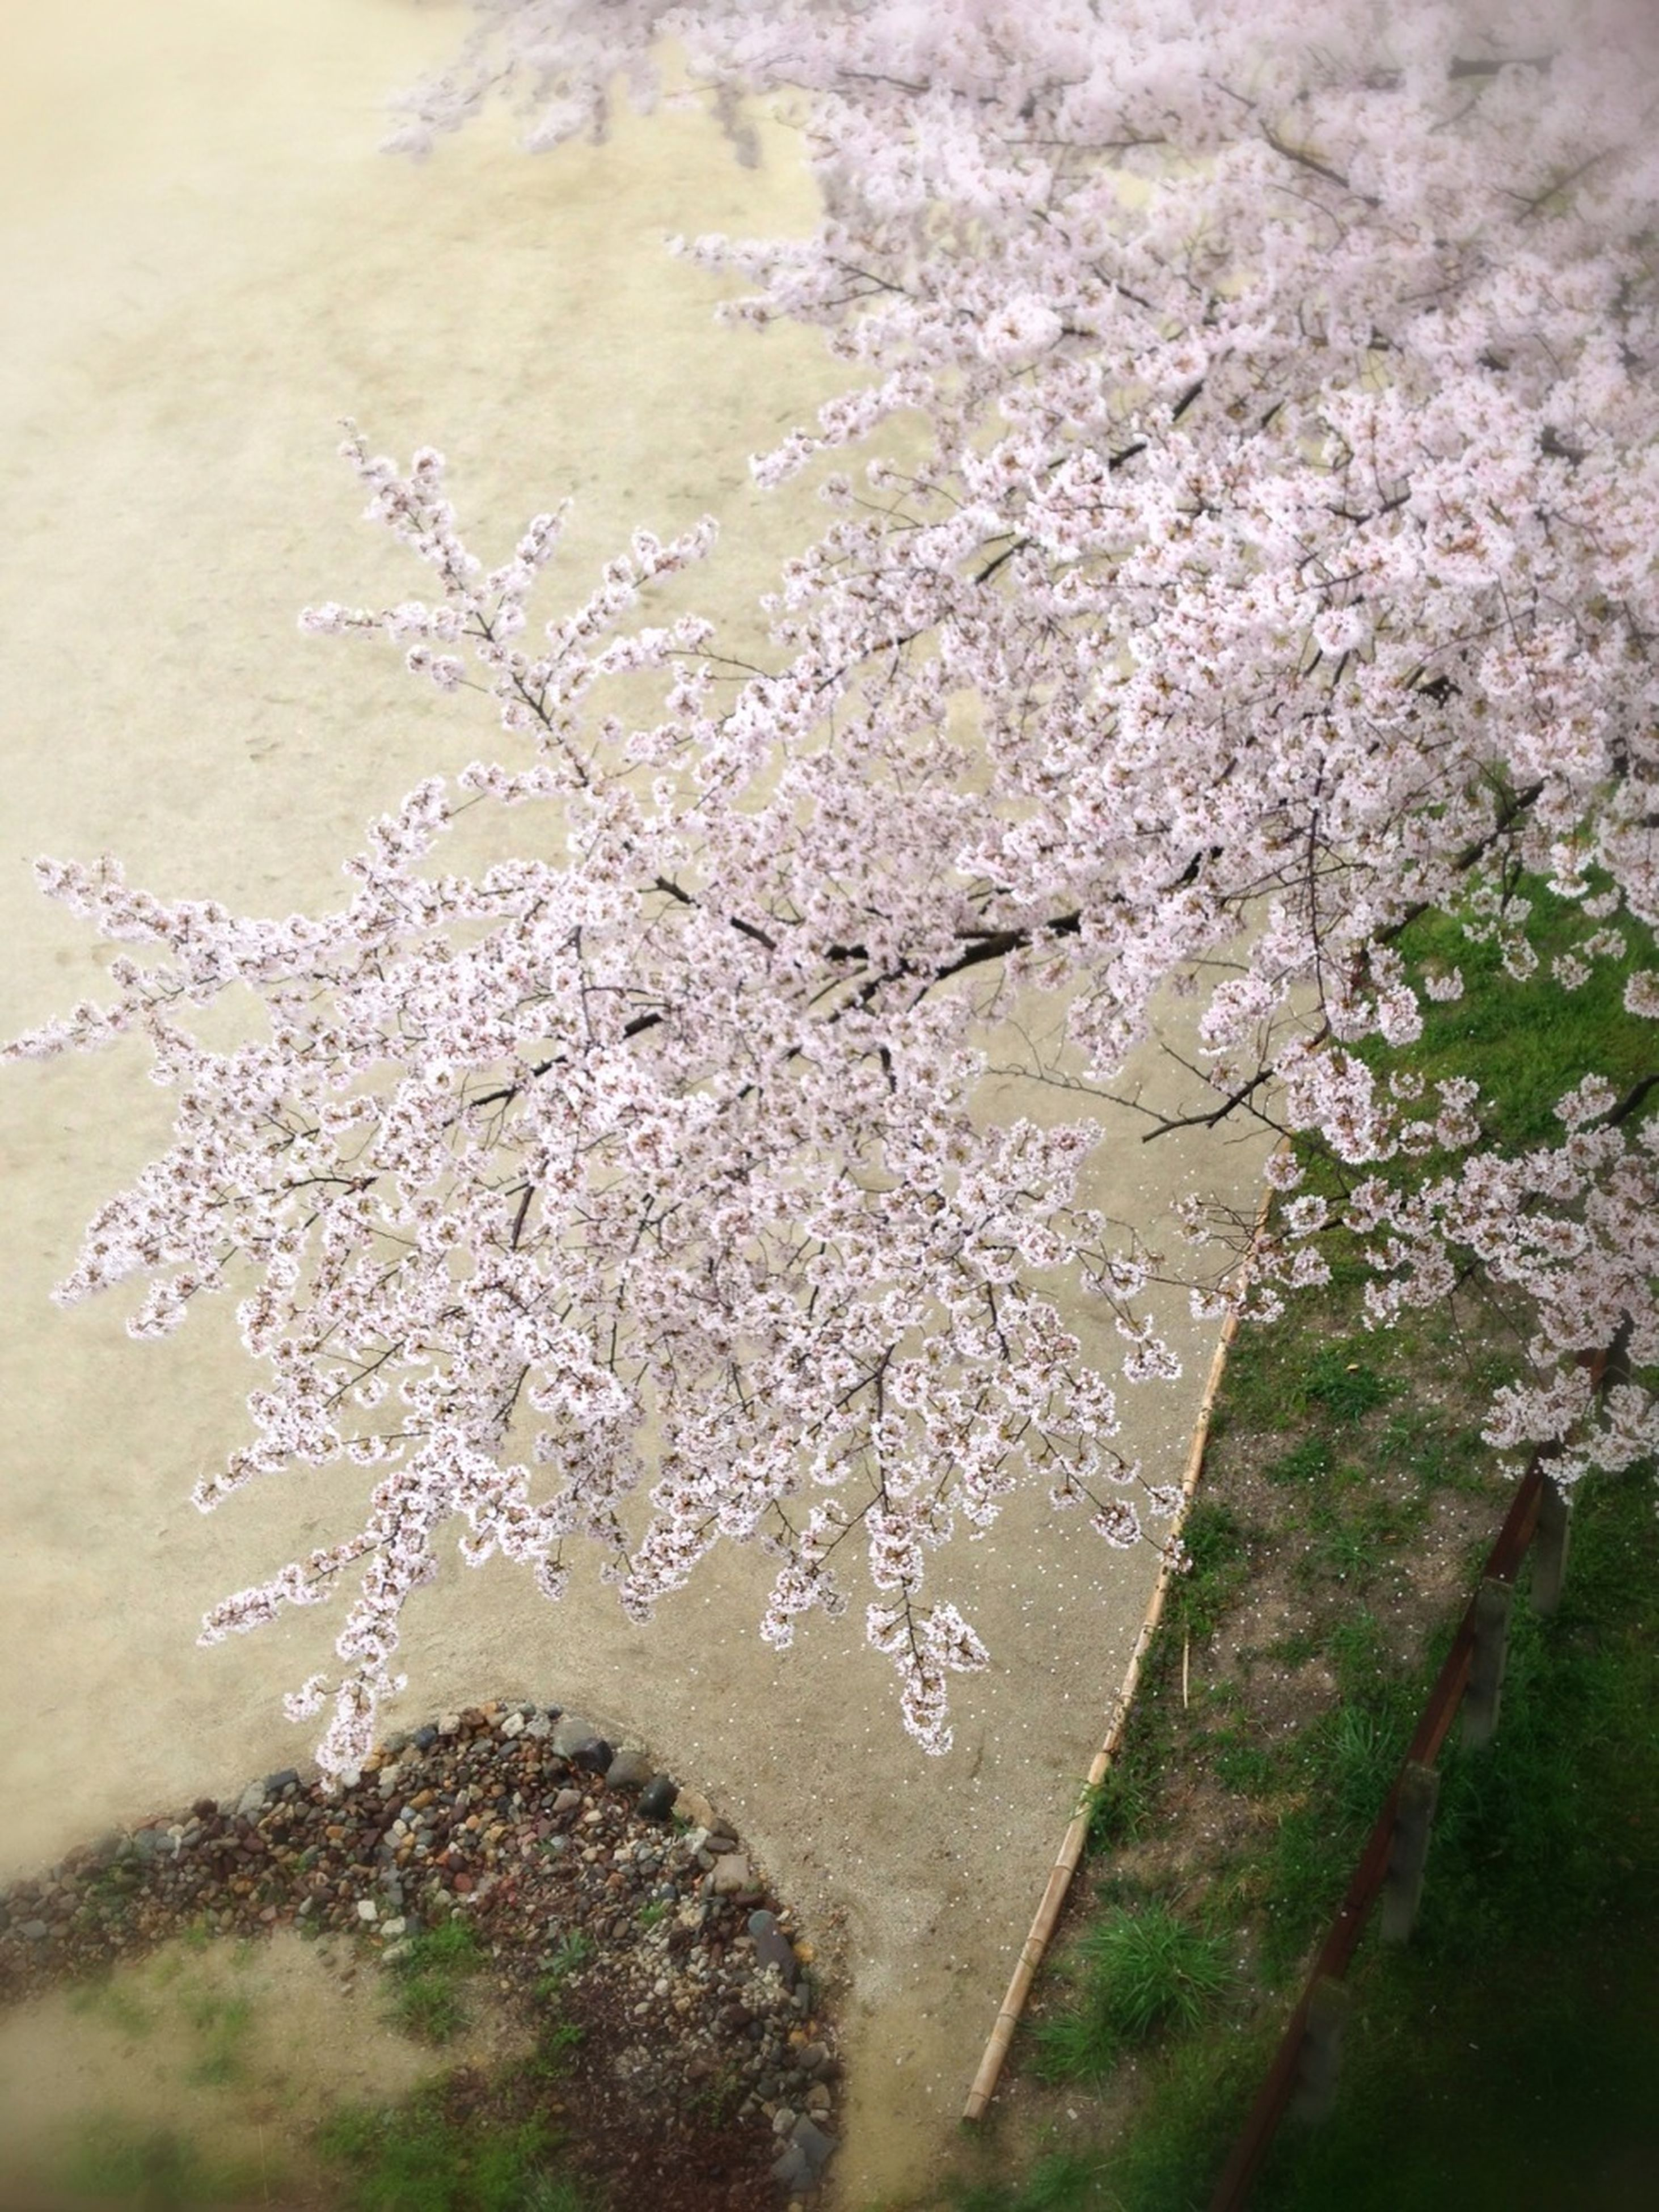 flower, growth, water, nature, high angle view, freshness, beauty in nature, plant, fragility, day, tree, outdoors, close-up, tranquility, branch, no people, white color, wet, sunlight, petal